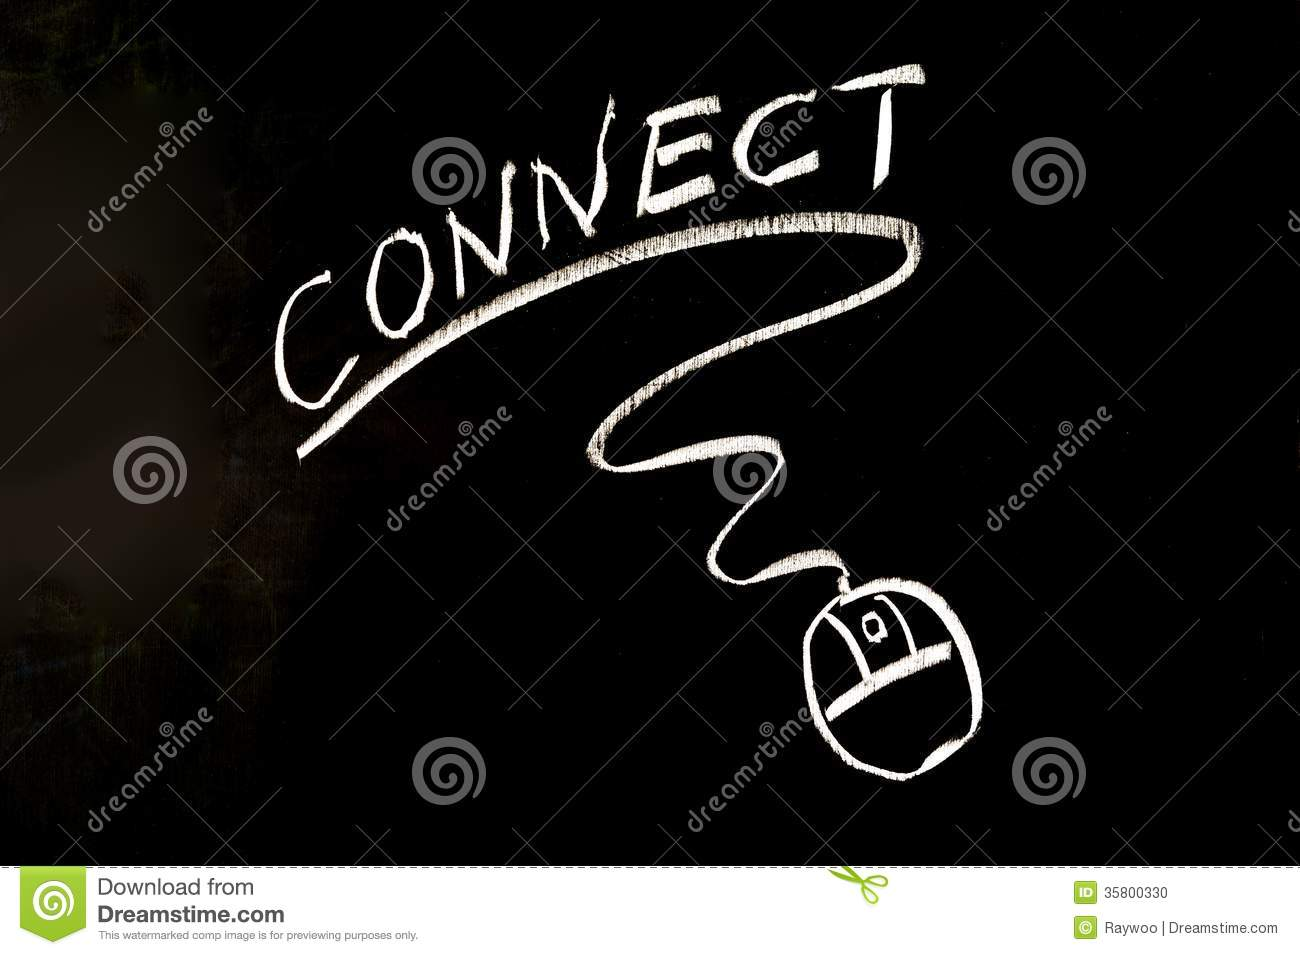 Connect word and mouse symbol